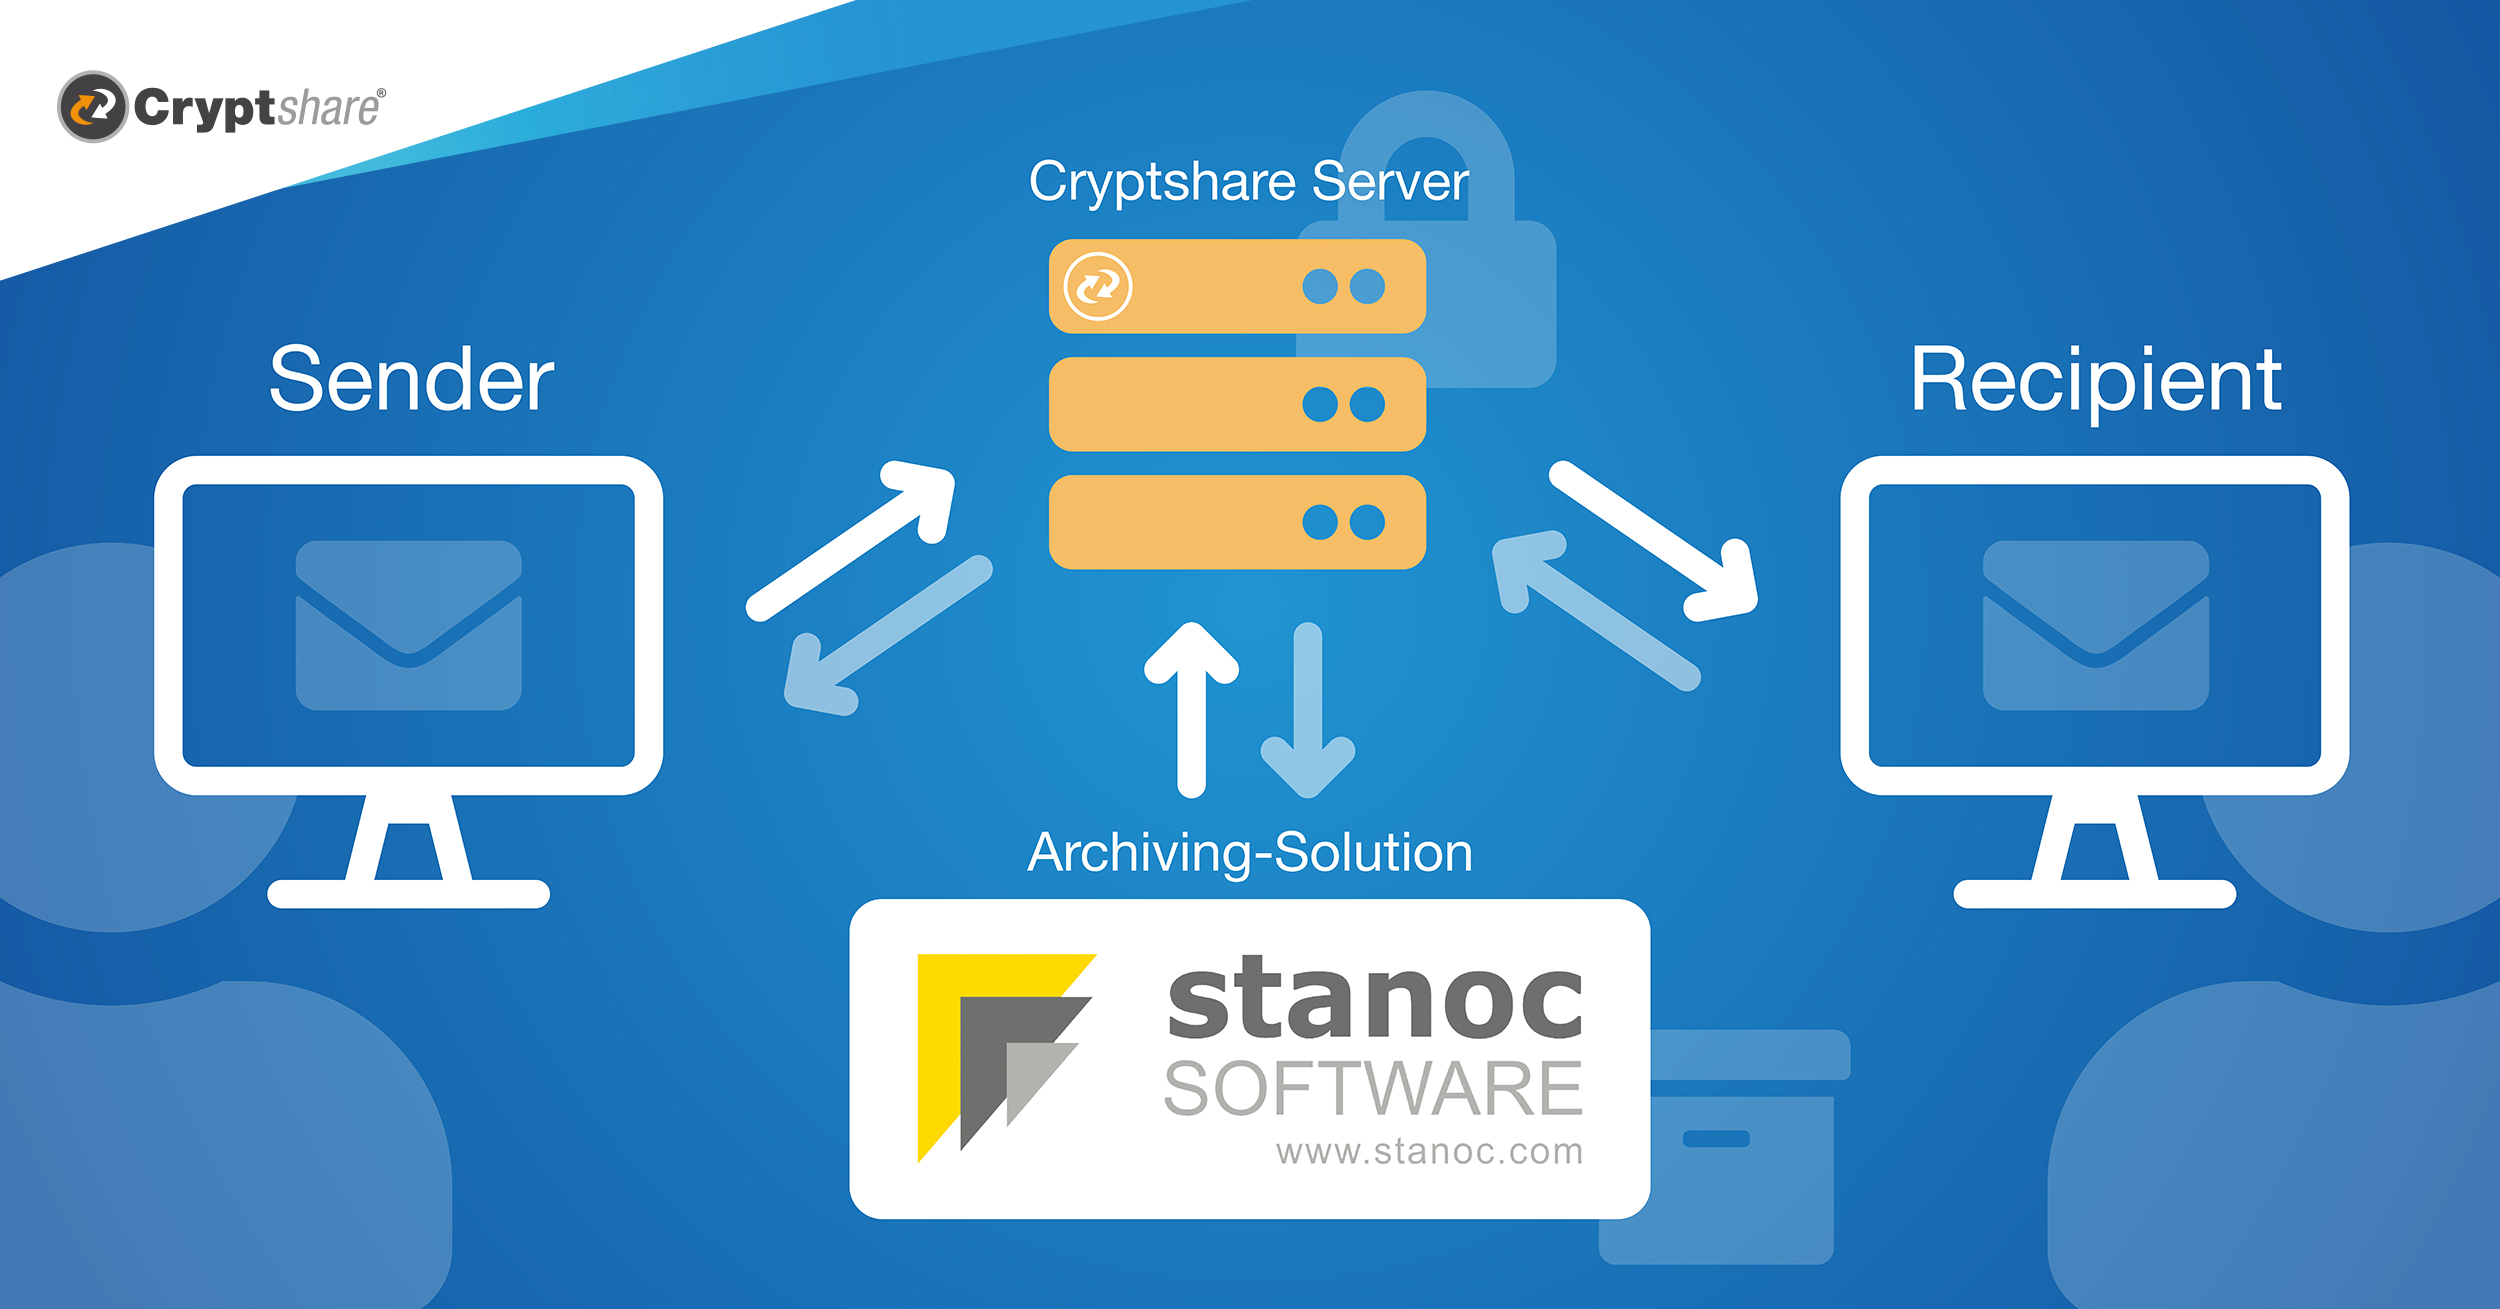 Cryptshare + stanoc = Secure messages and data in transit as well as auditable and legally compliant archiving.